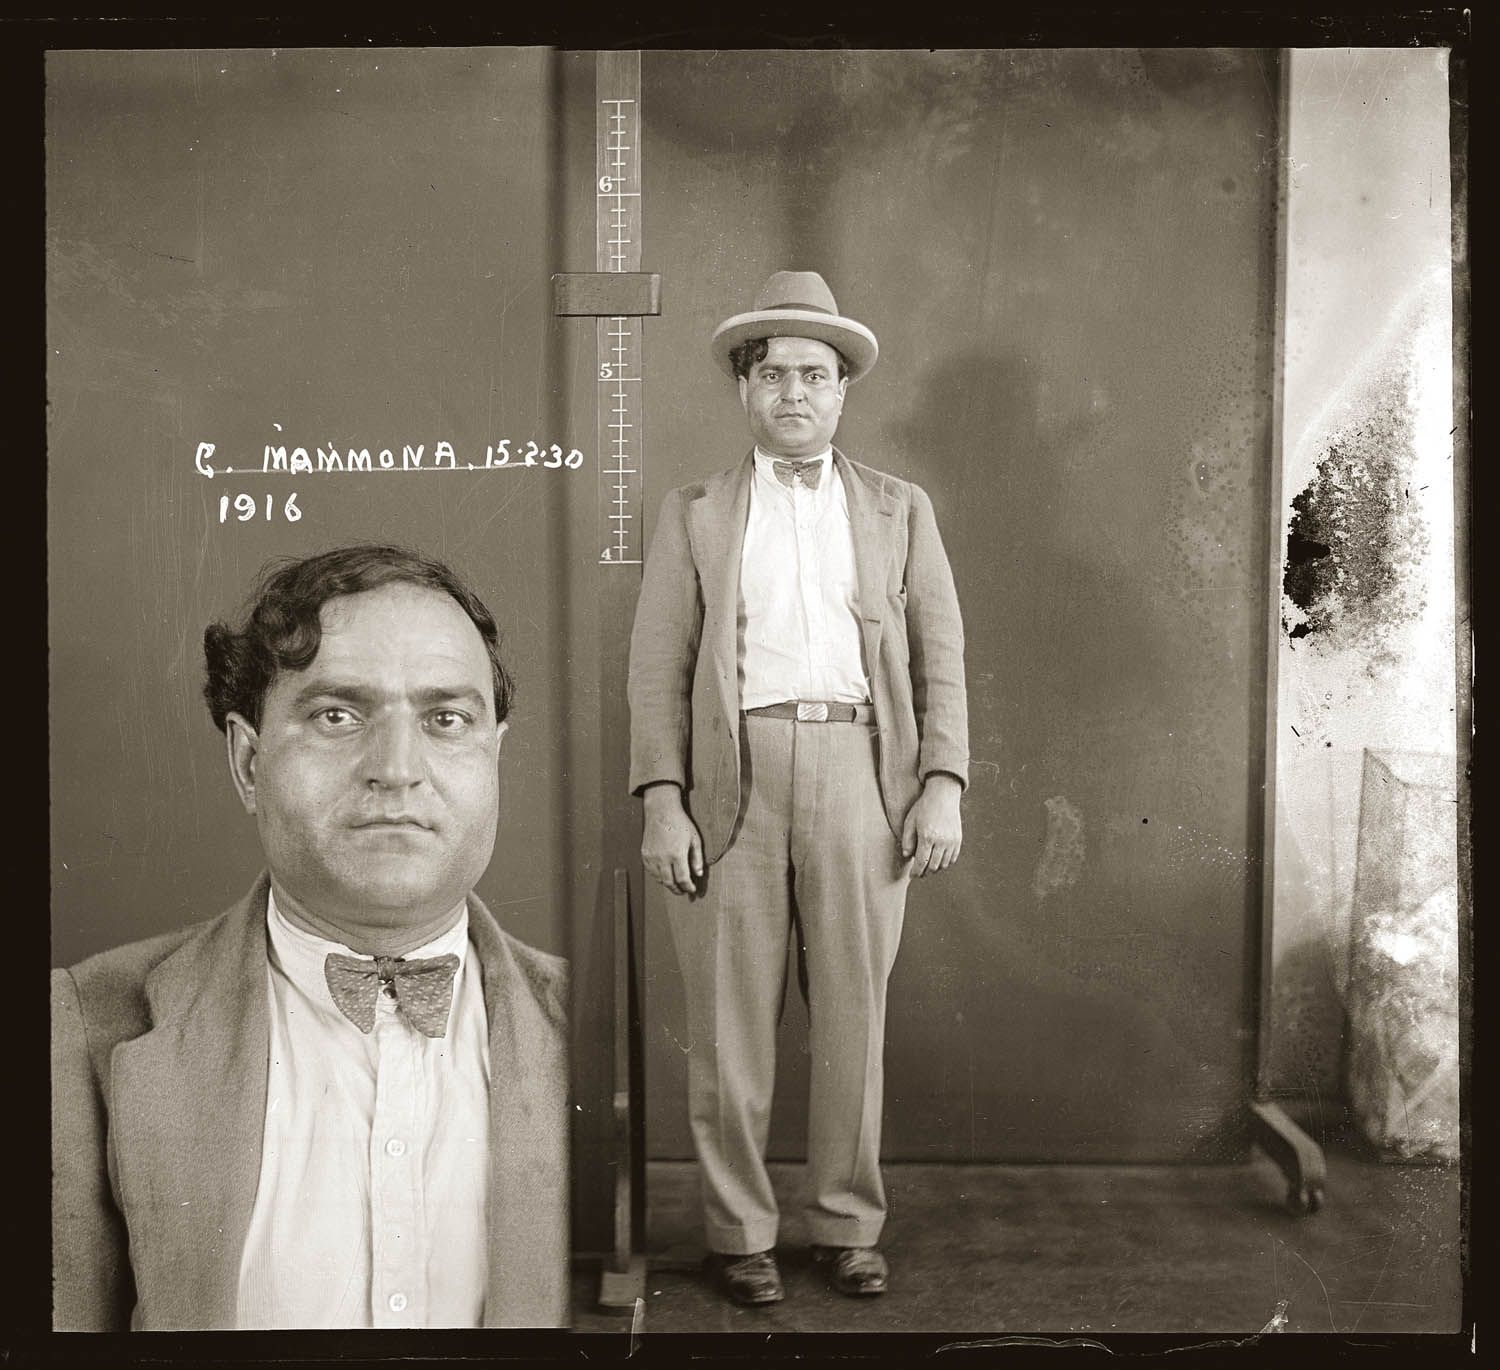 """Although labelled 'G Mammona', the mug shot shows Giuseppe Mammone, who was presumably interviewed and photographed in connection with the stabbing murder of Domenico Belle on Newtown Station, on the morning of 11 February 1930. This picture is one of a series of around 2500 """"special photographs"""" taken by New South Wales Police Department photographers between 1910 and 1930."""